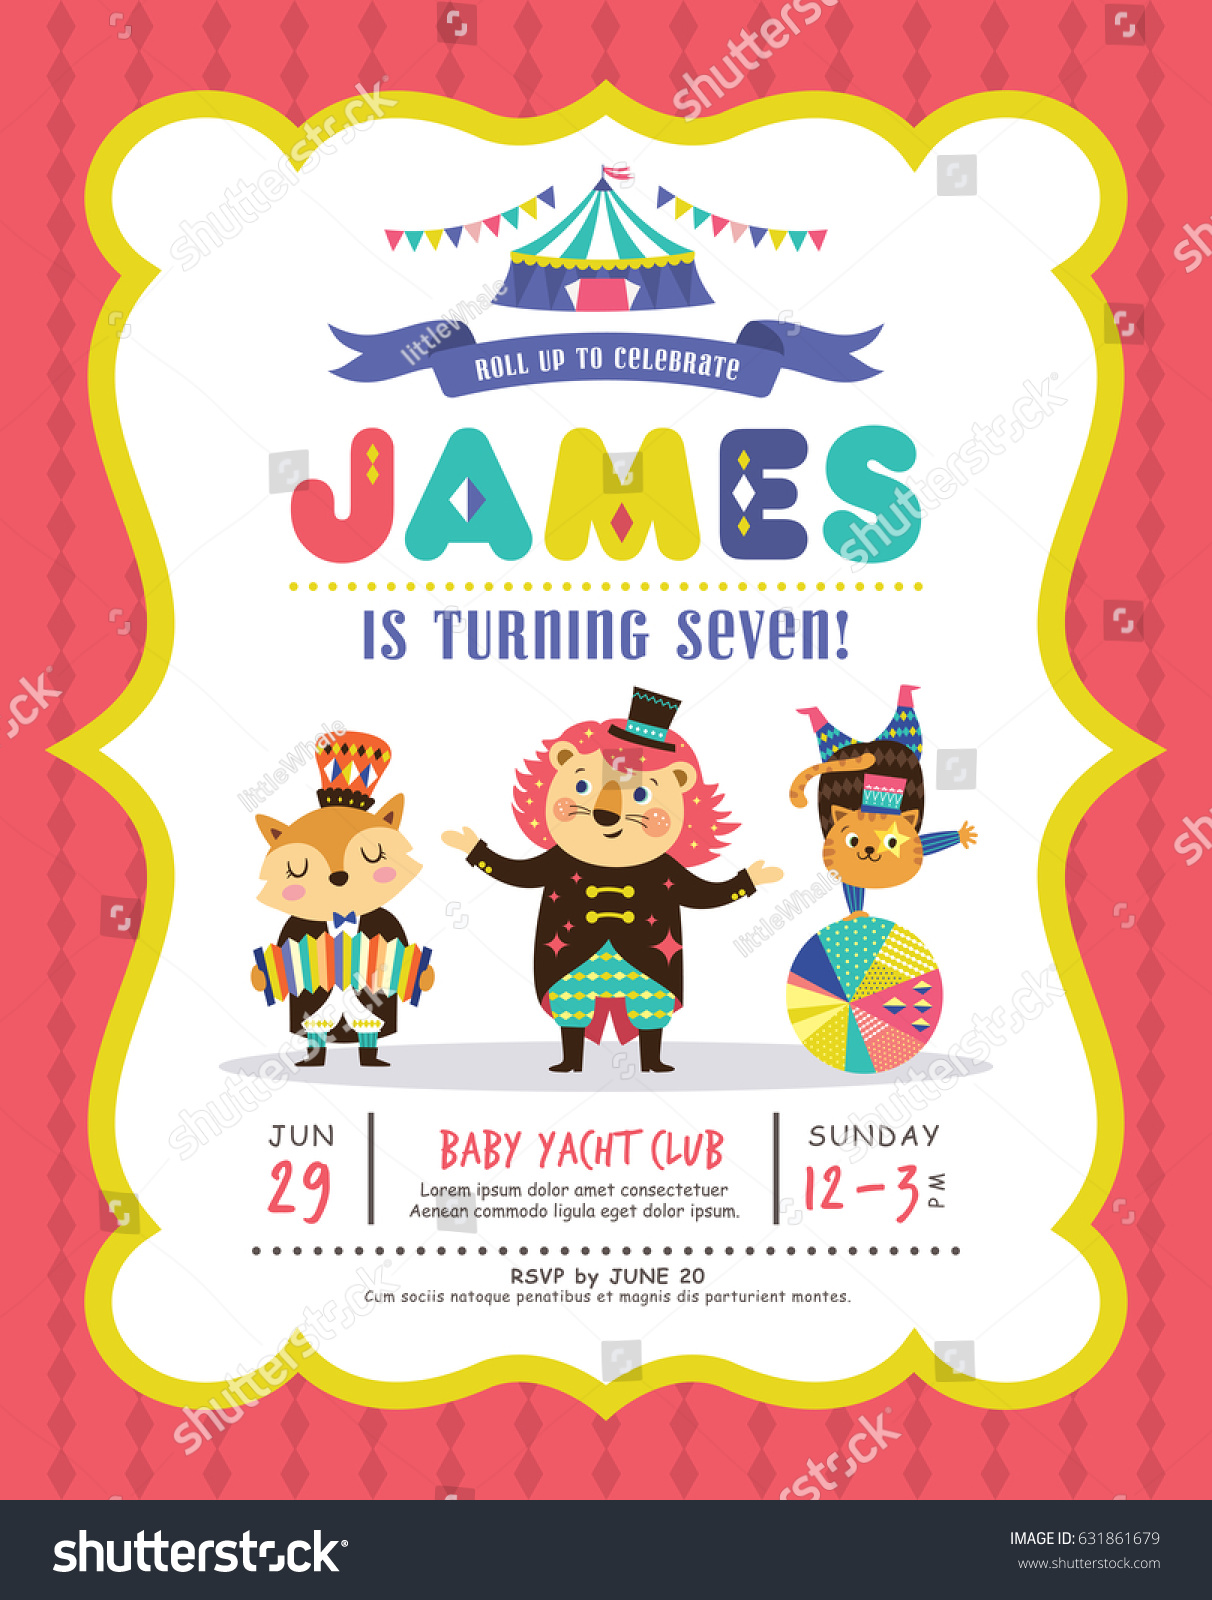 Kids birthday party invitation card circus stock vector 631861679 kids birthday party invitation card with circus theme stopboris